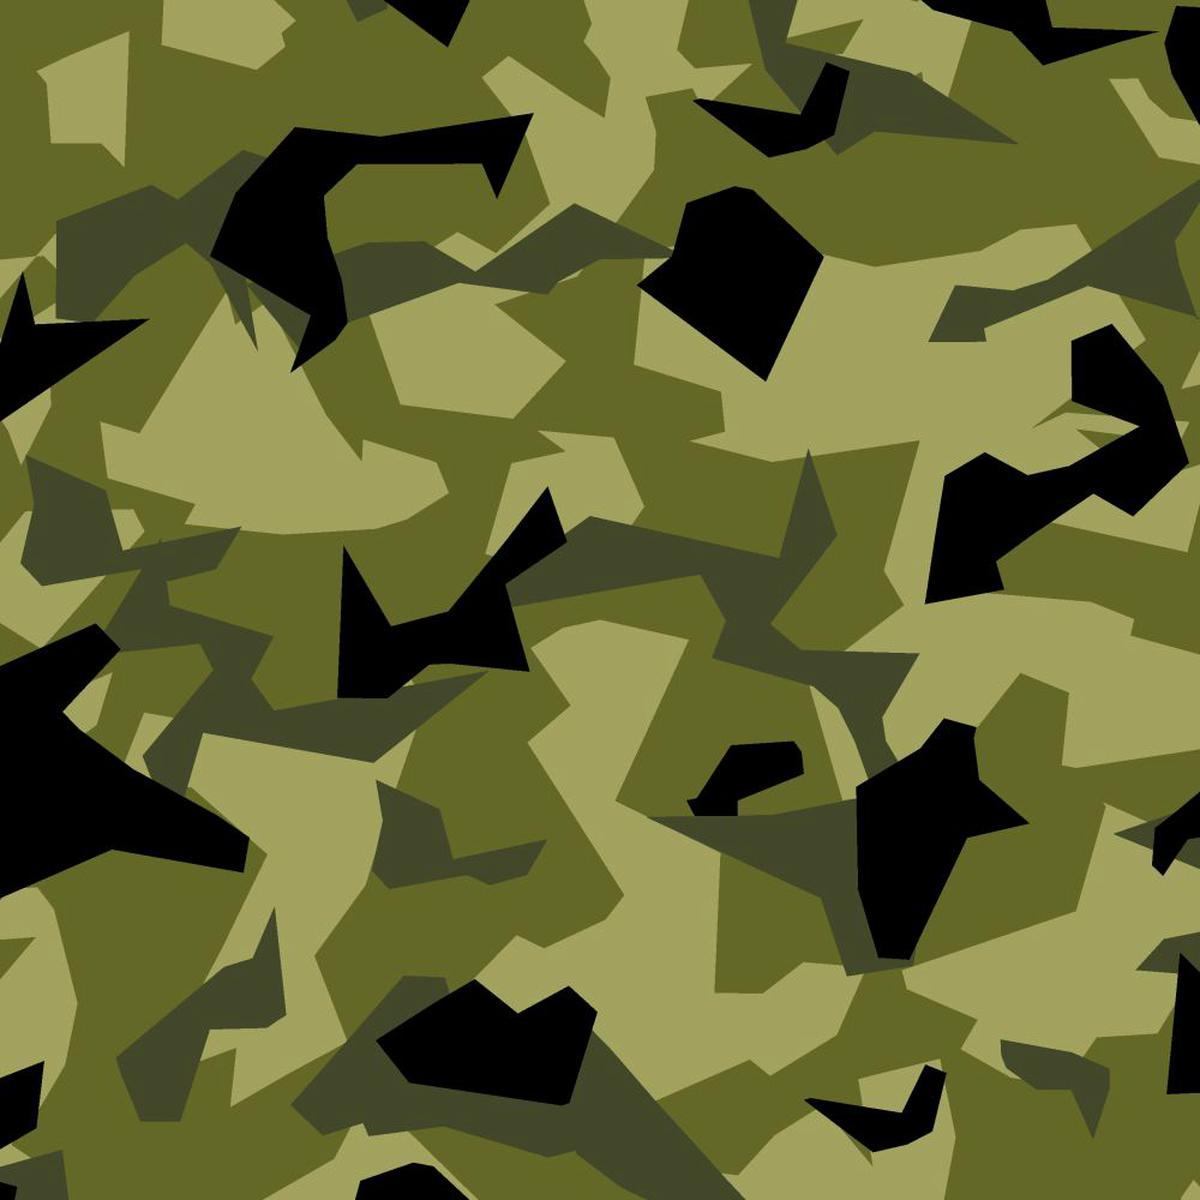 m90 camouflage for sale